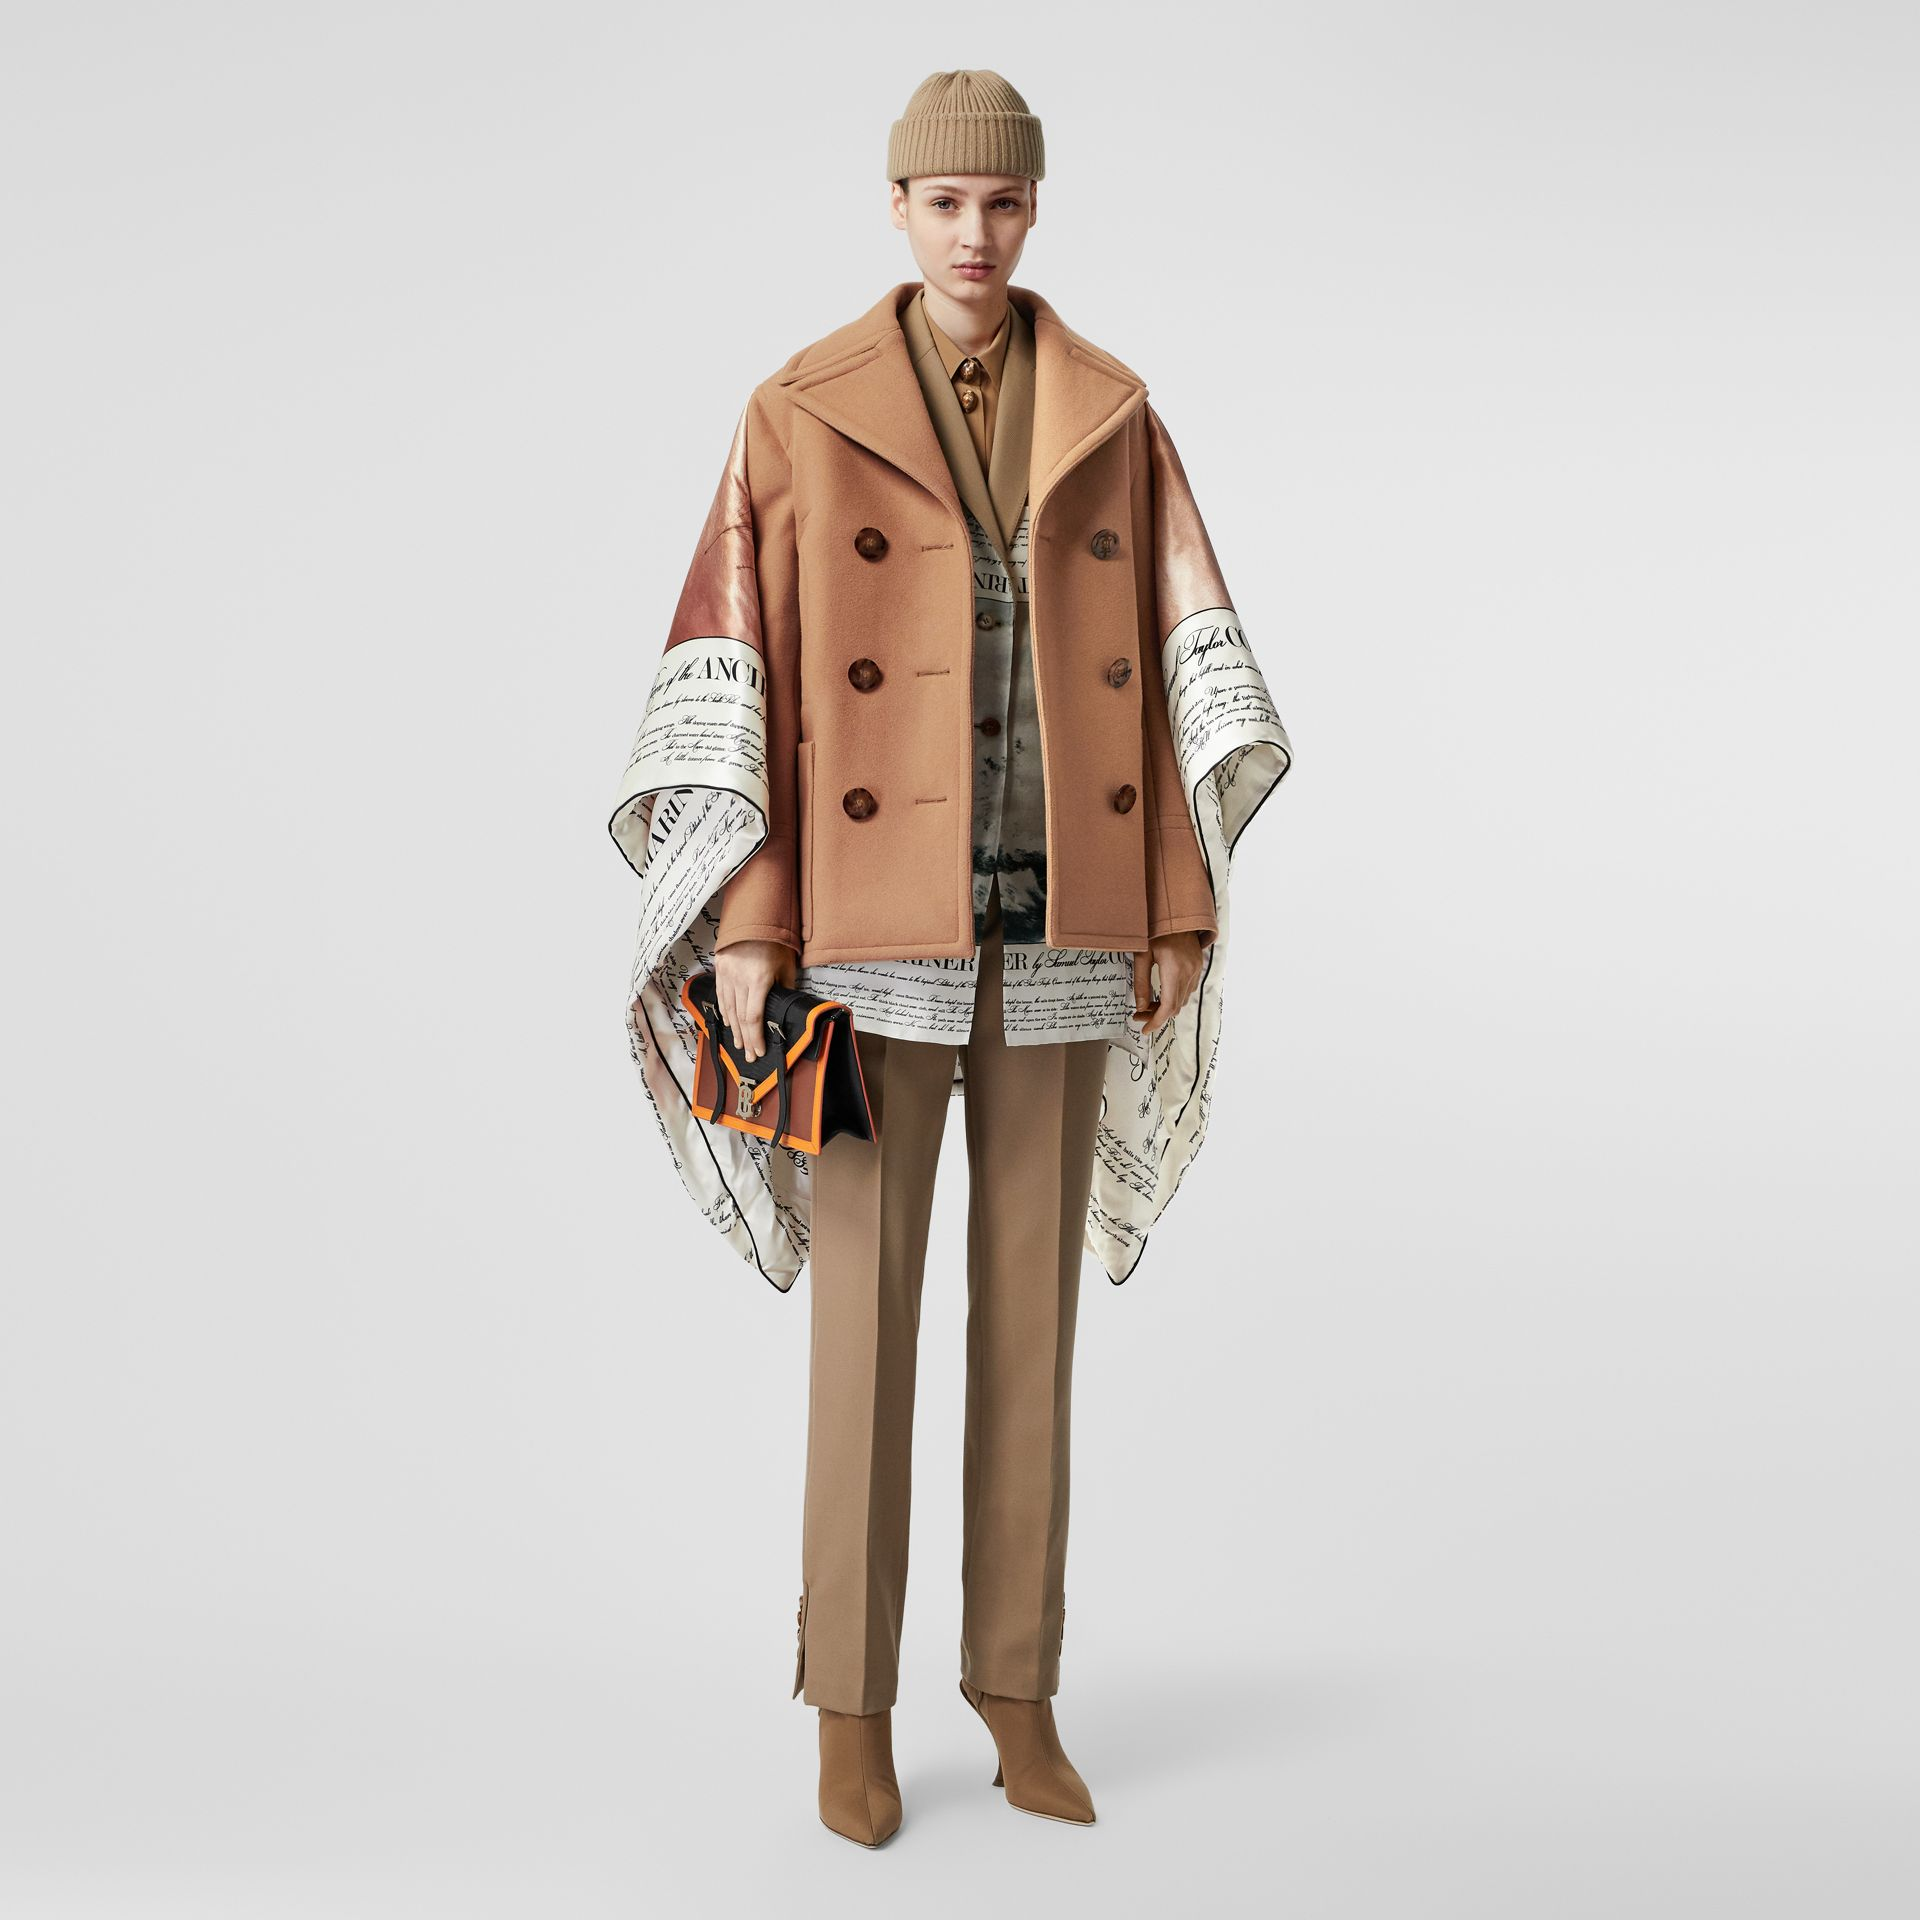 Mariner Print Blanket Detail Technical Wool Pea Coat in Warm Camel - Women | Burberry United Kingdom - gallery image 1